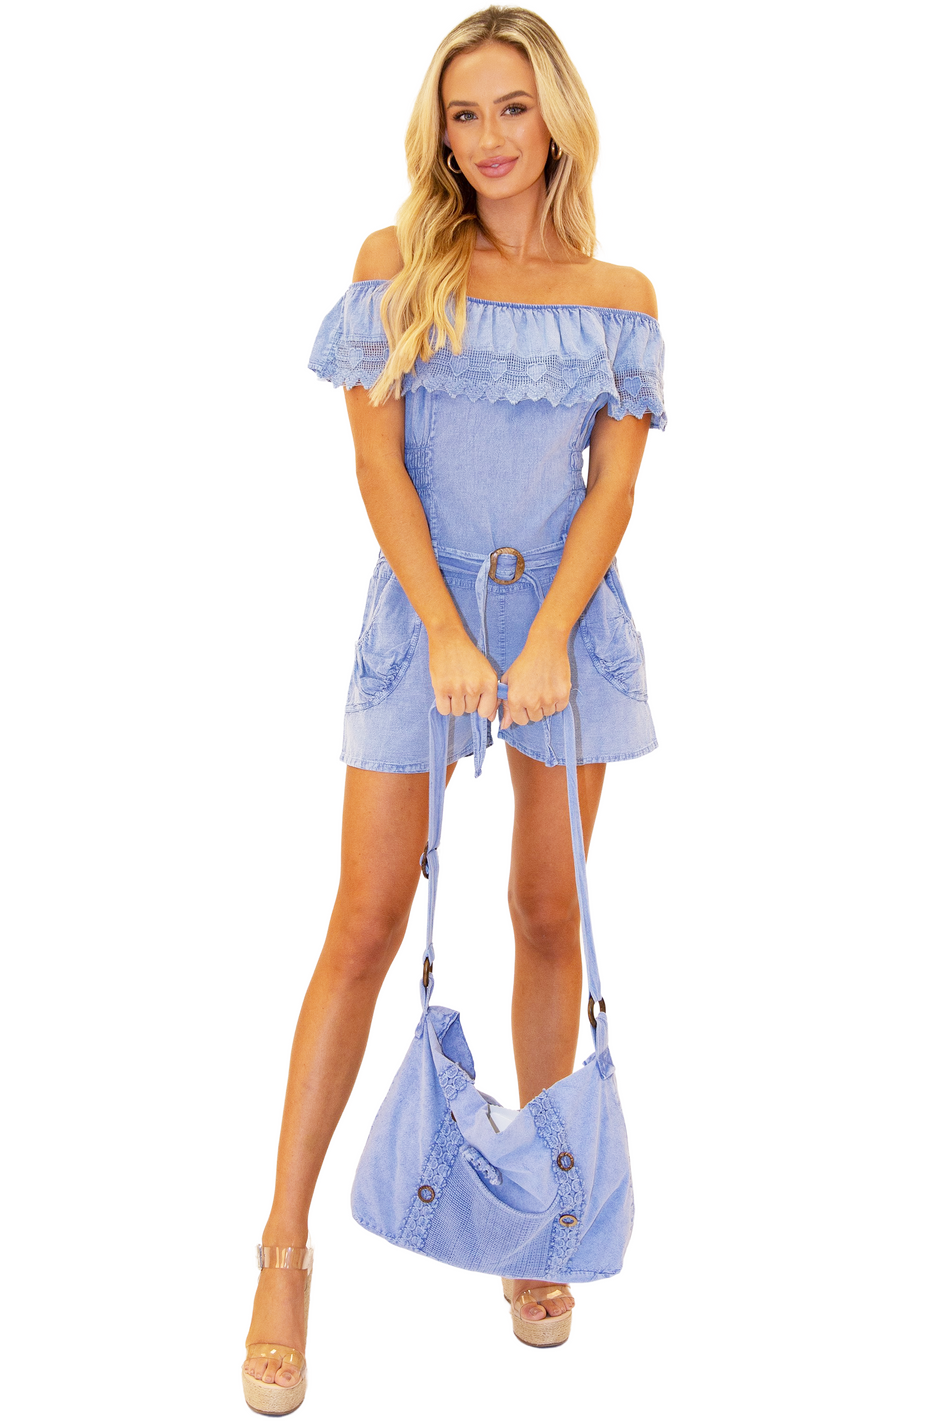 NW1173 - Blue Cotton Romper